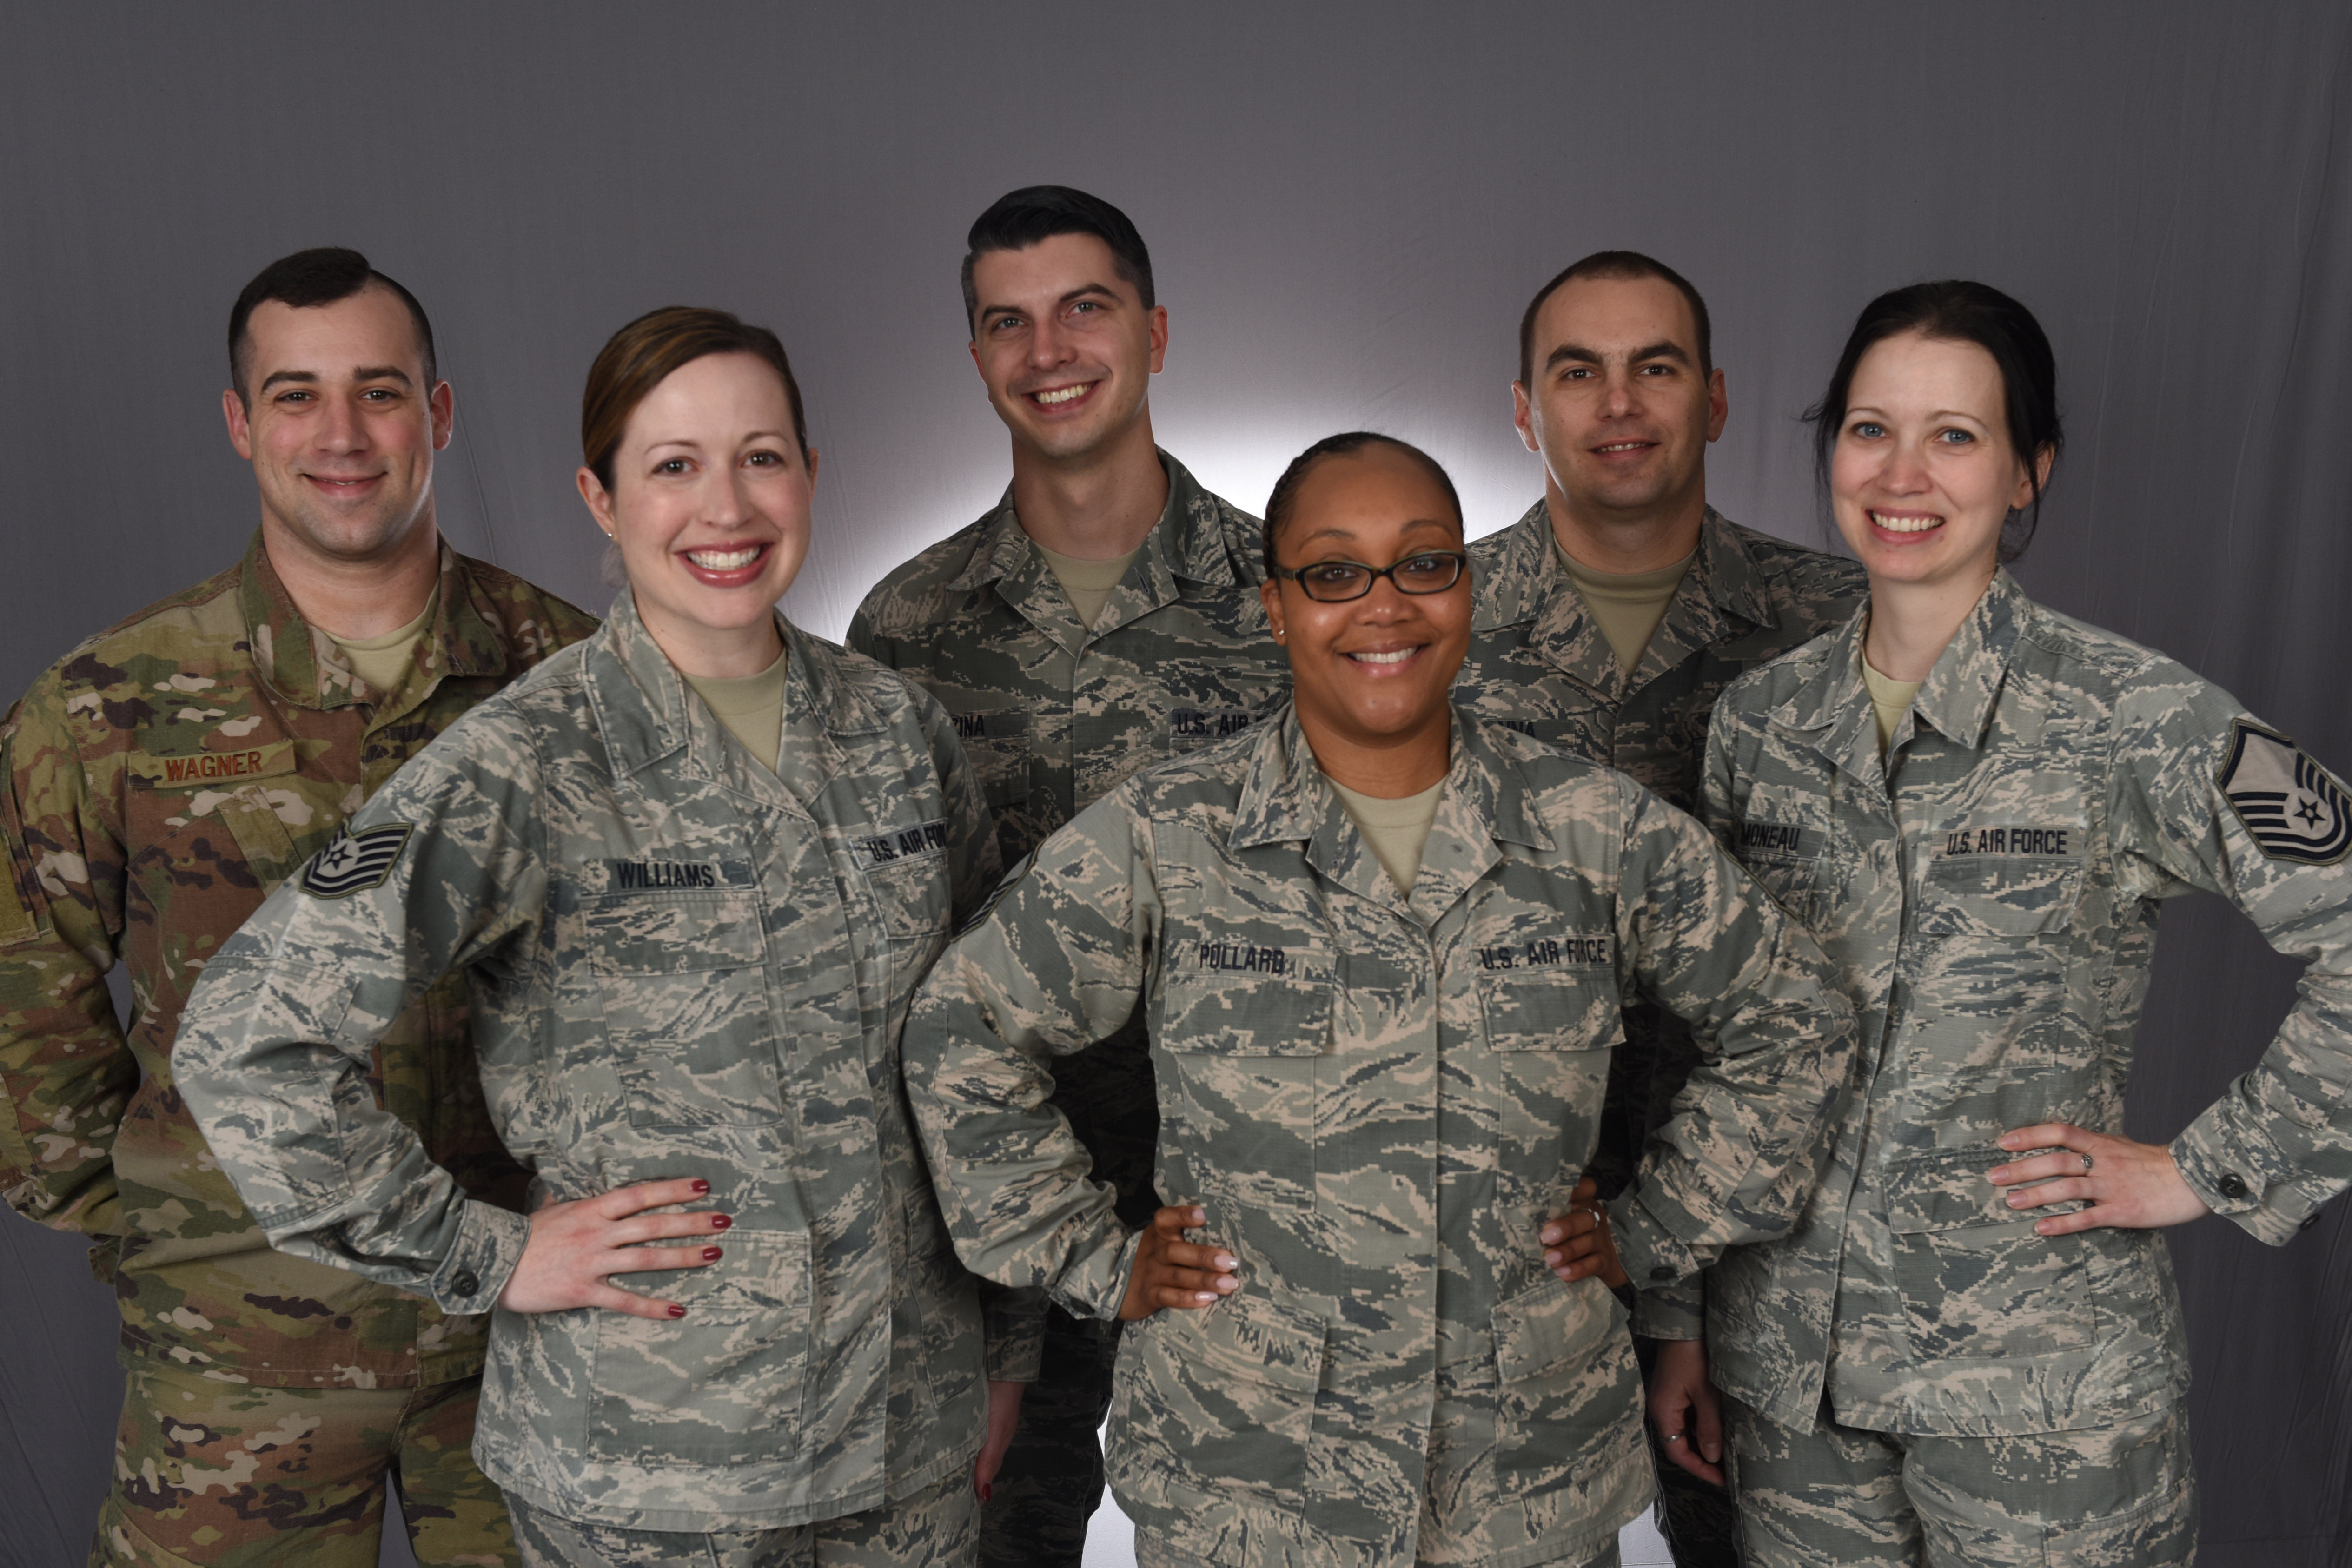 Group photo of 171st recruiting team